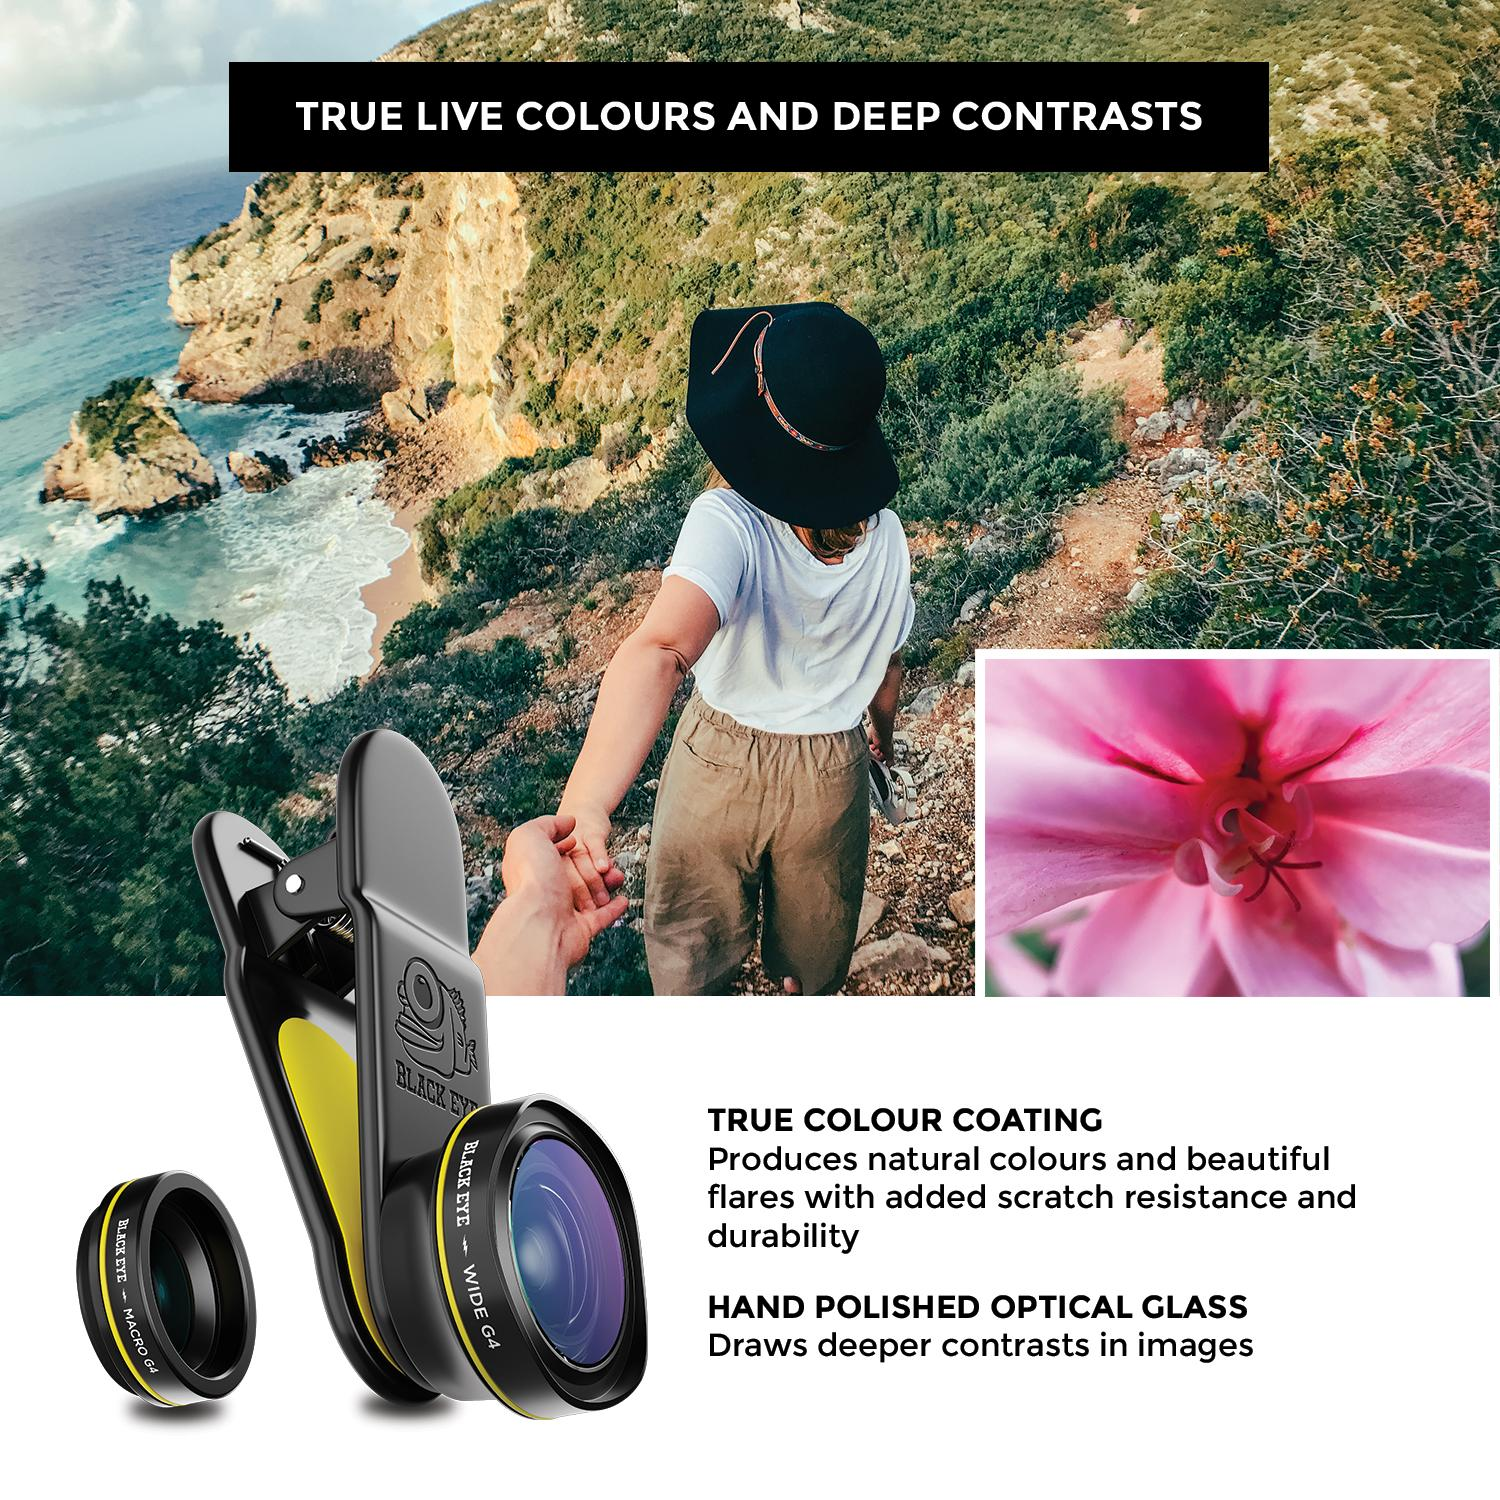 True color coating and hand polsihed optical glass